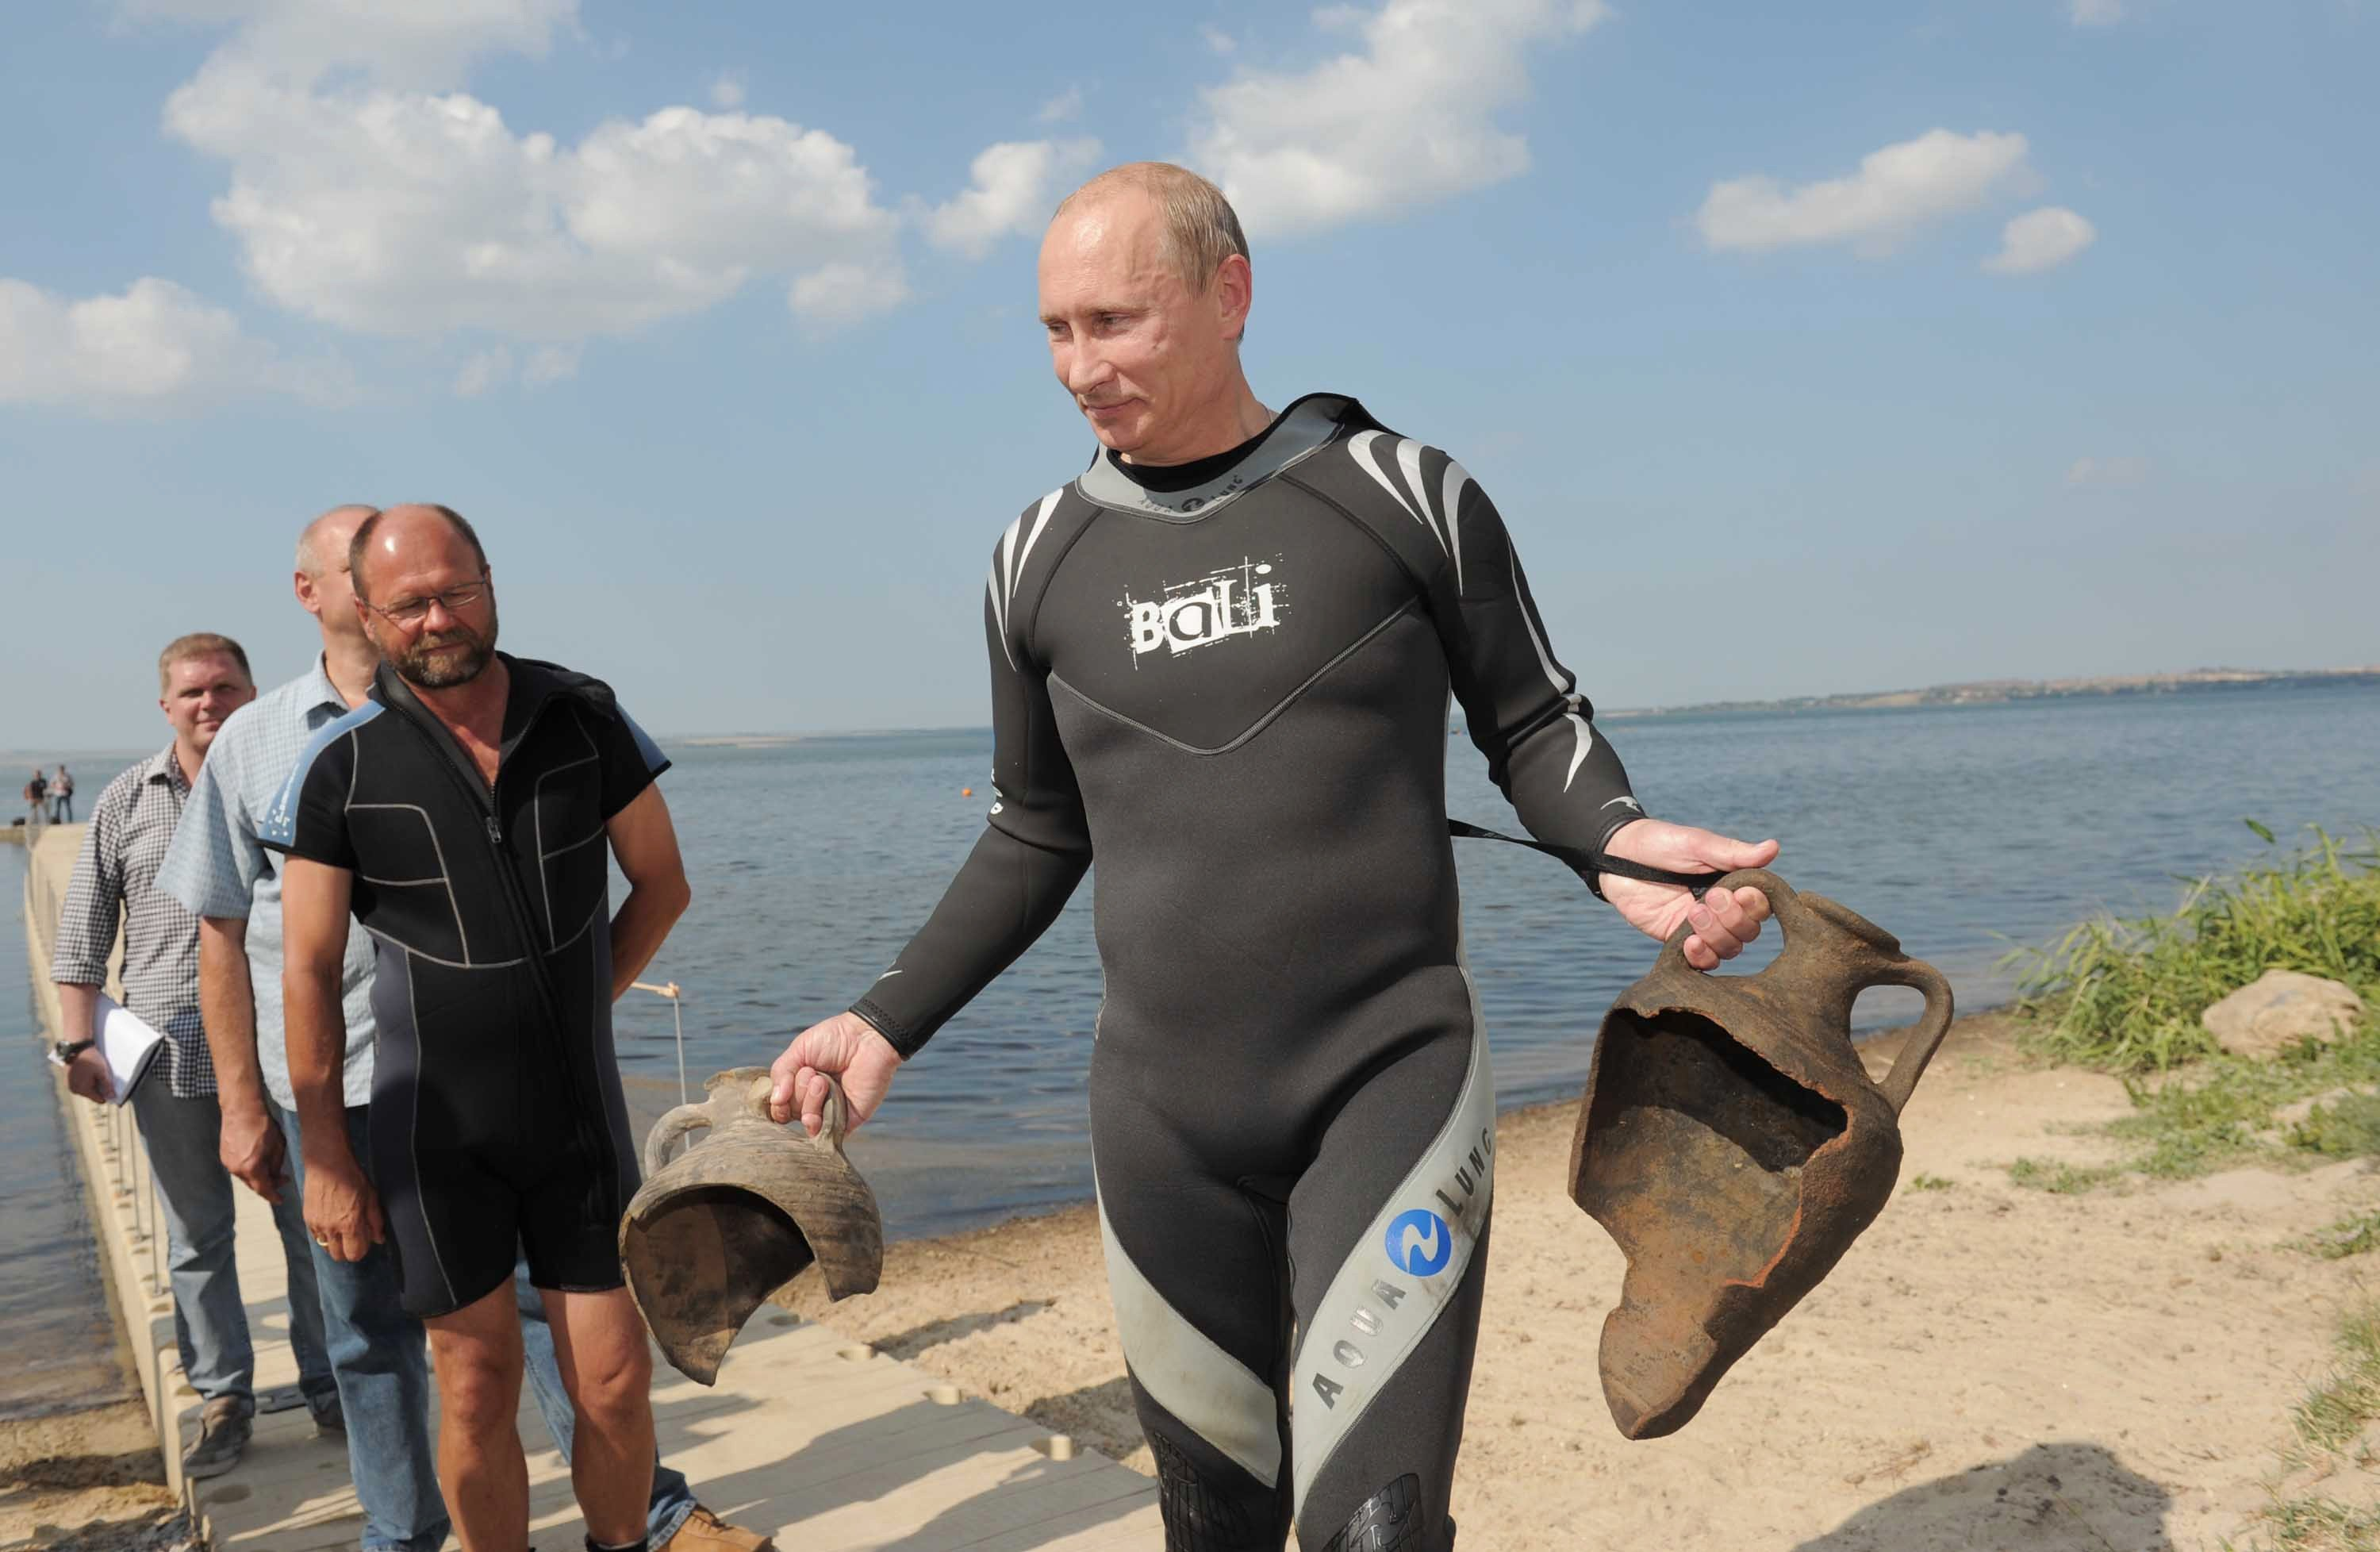 Russian Prime Minister Vladimir Putin carries artifacts he recovered while diving at the archaeological site of Phanagoria off the Taman peninsular in southern Russia, Aug. 10, 2011. (Reuters Photo)